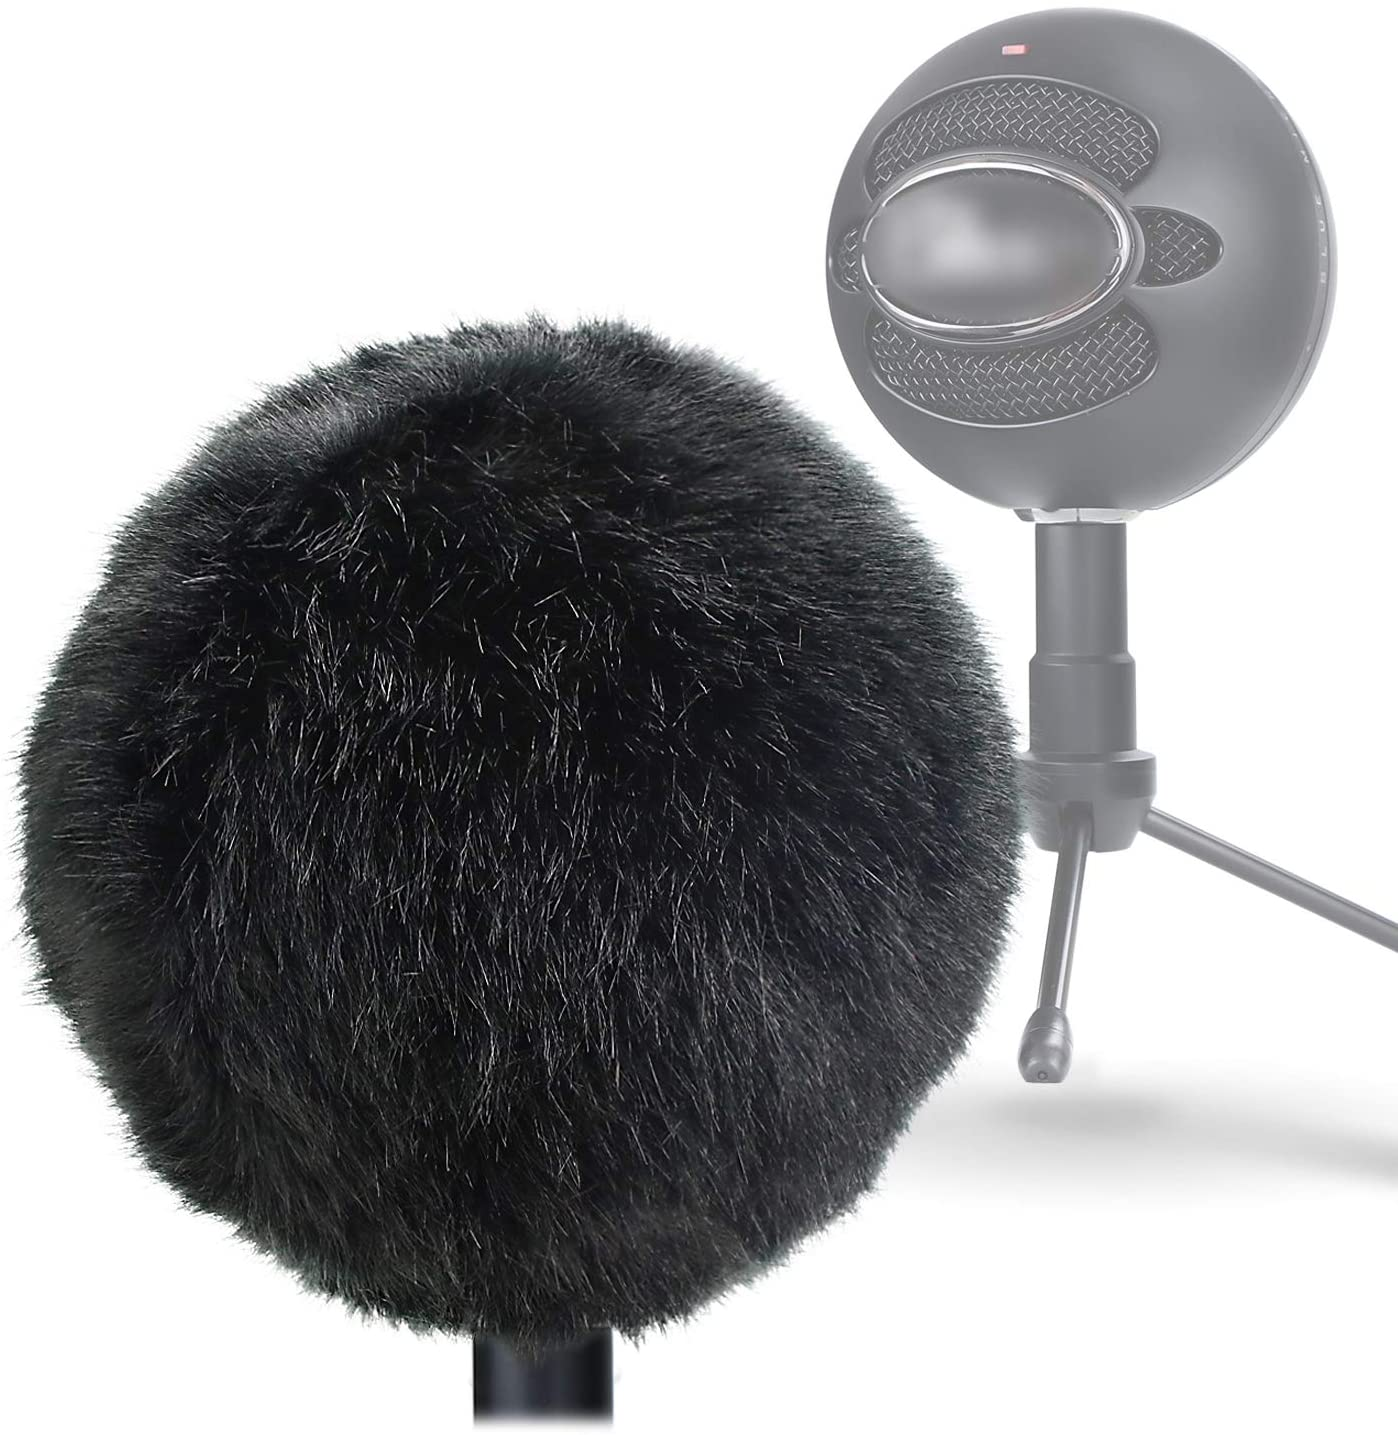 YOUSHARES Furry Windscreen Muff - Customized Pop Filter for Microphone, Deadcat Windshield Wind Cover for Improve Blue Snowball iCE Mic Audio Quality (Black)